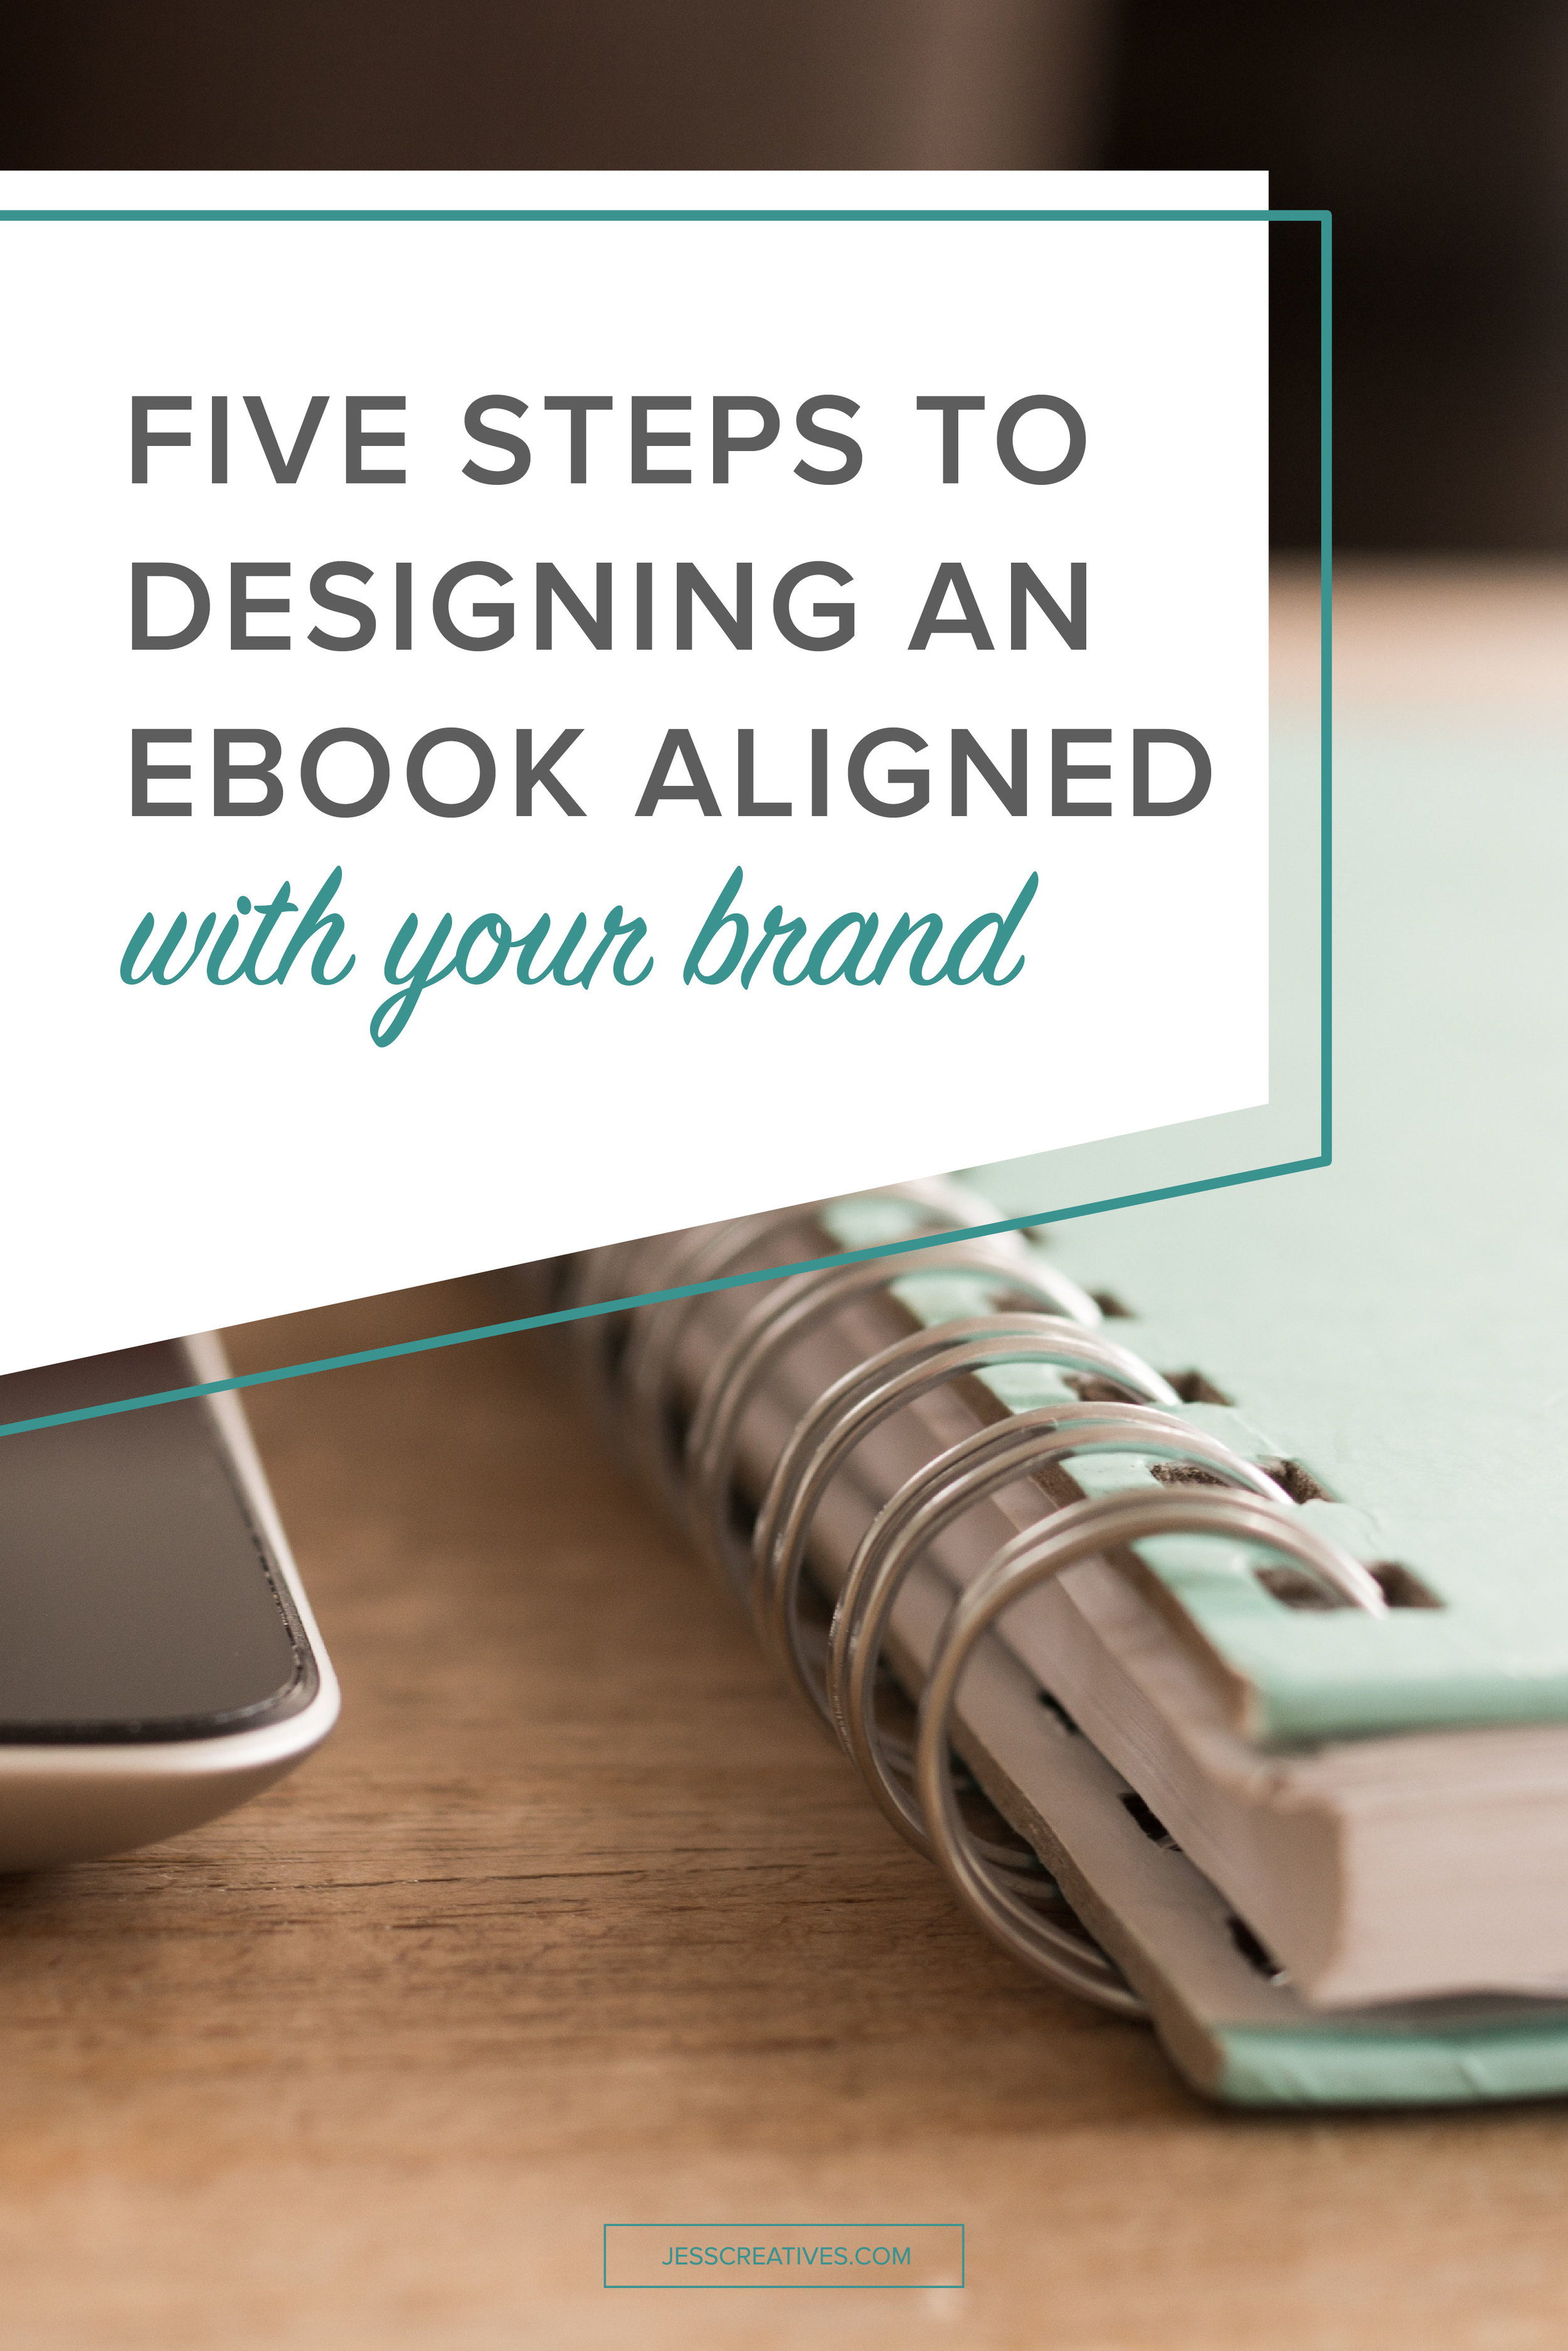 Five steps to designing an eBook aligned with your brand